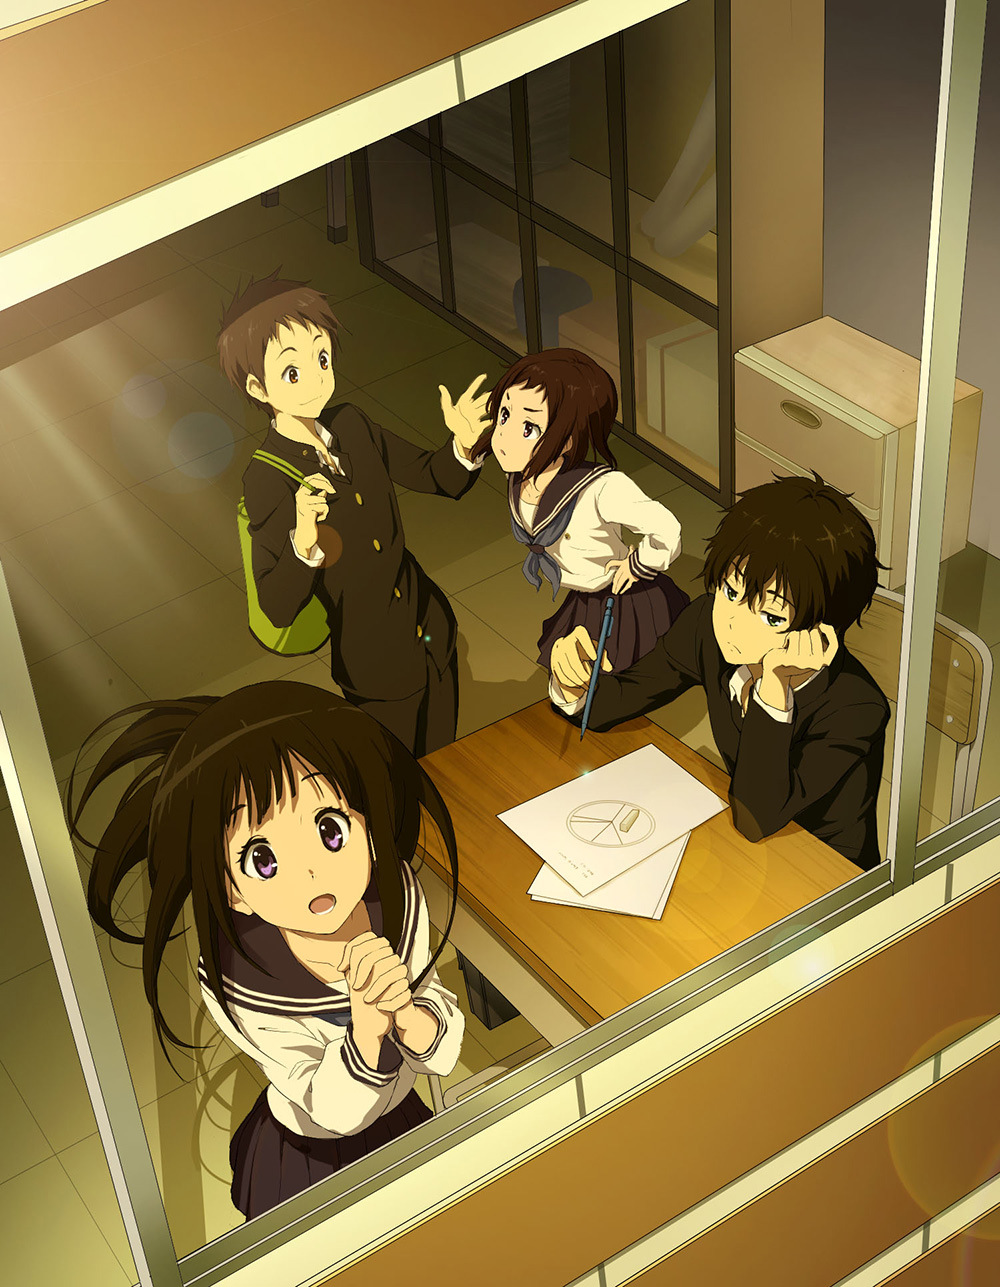 Hyouka anime visual